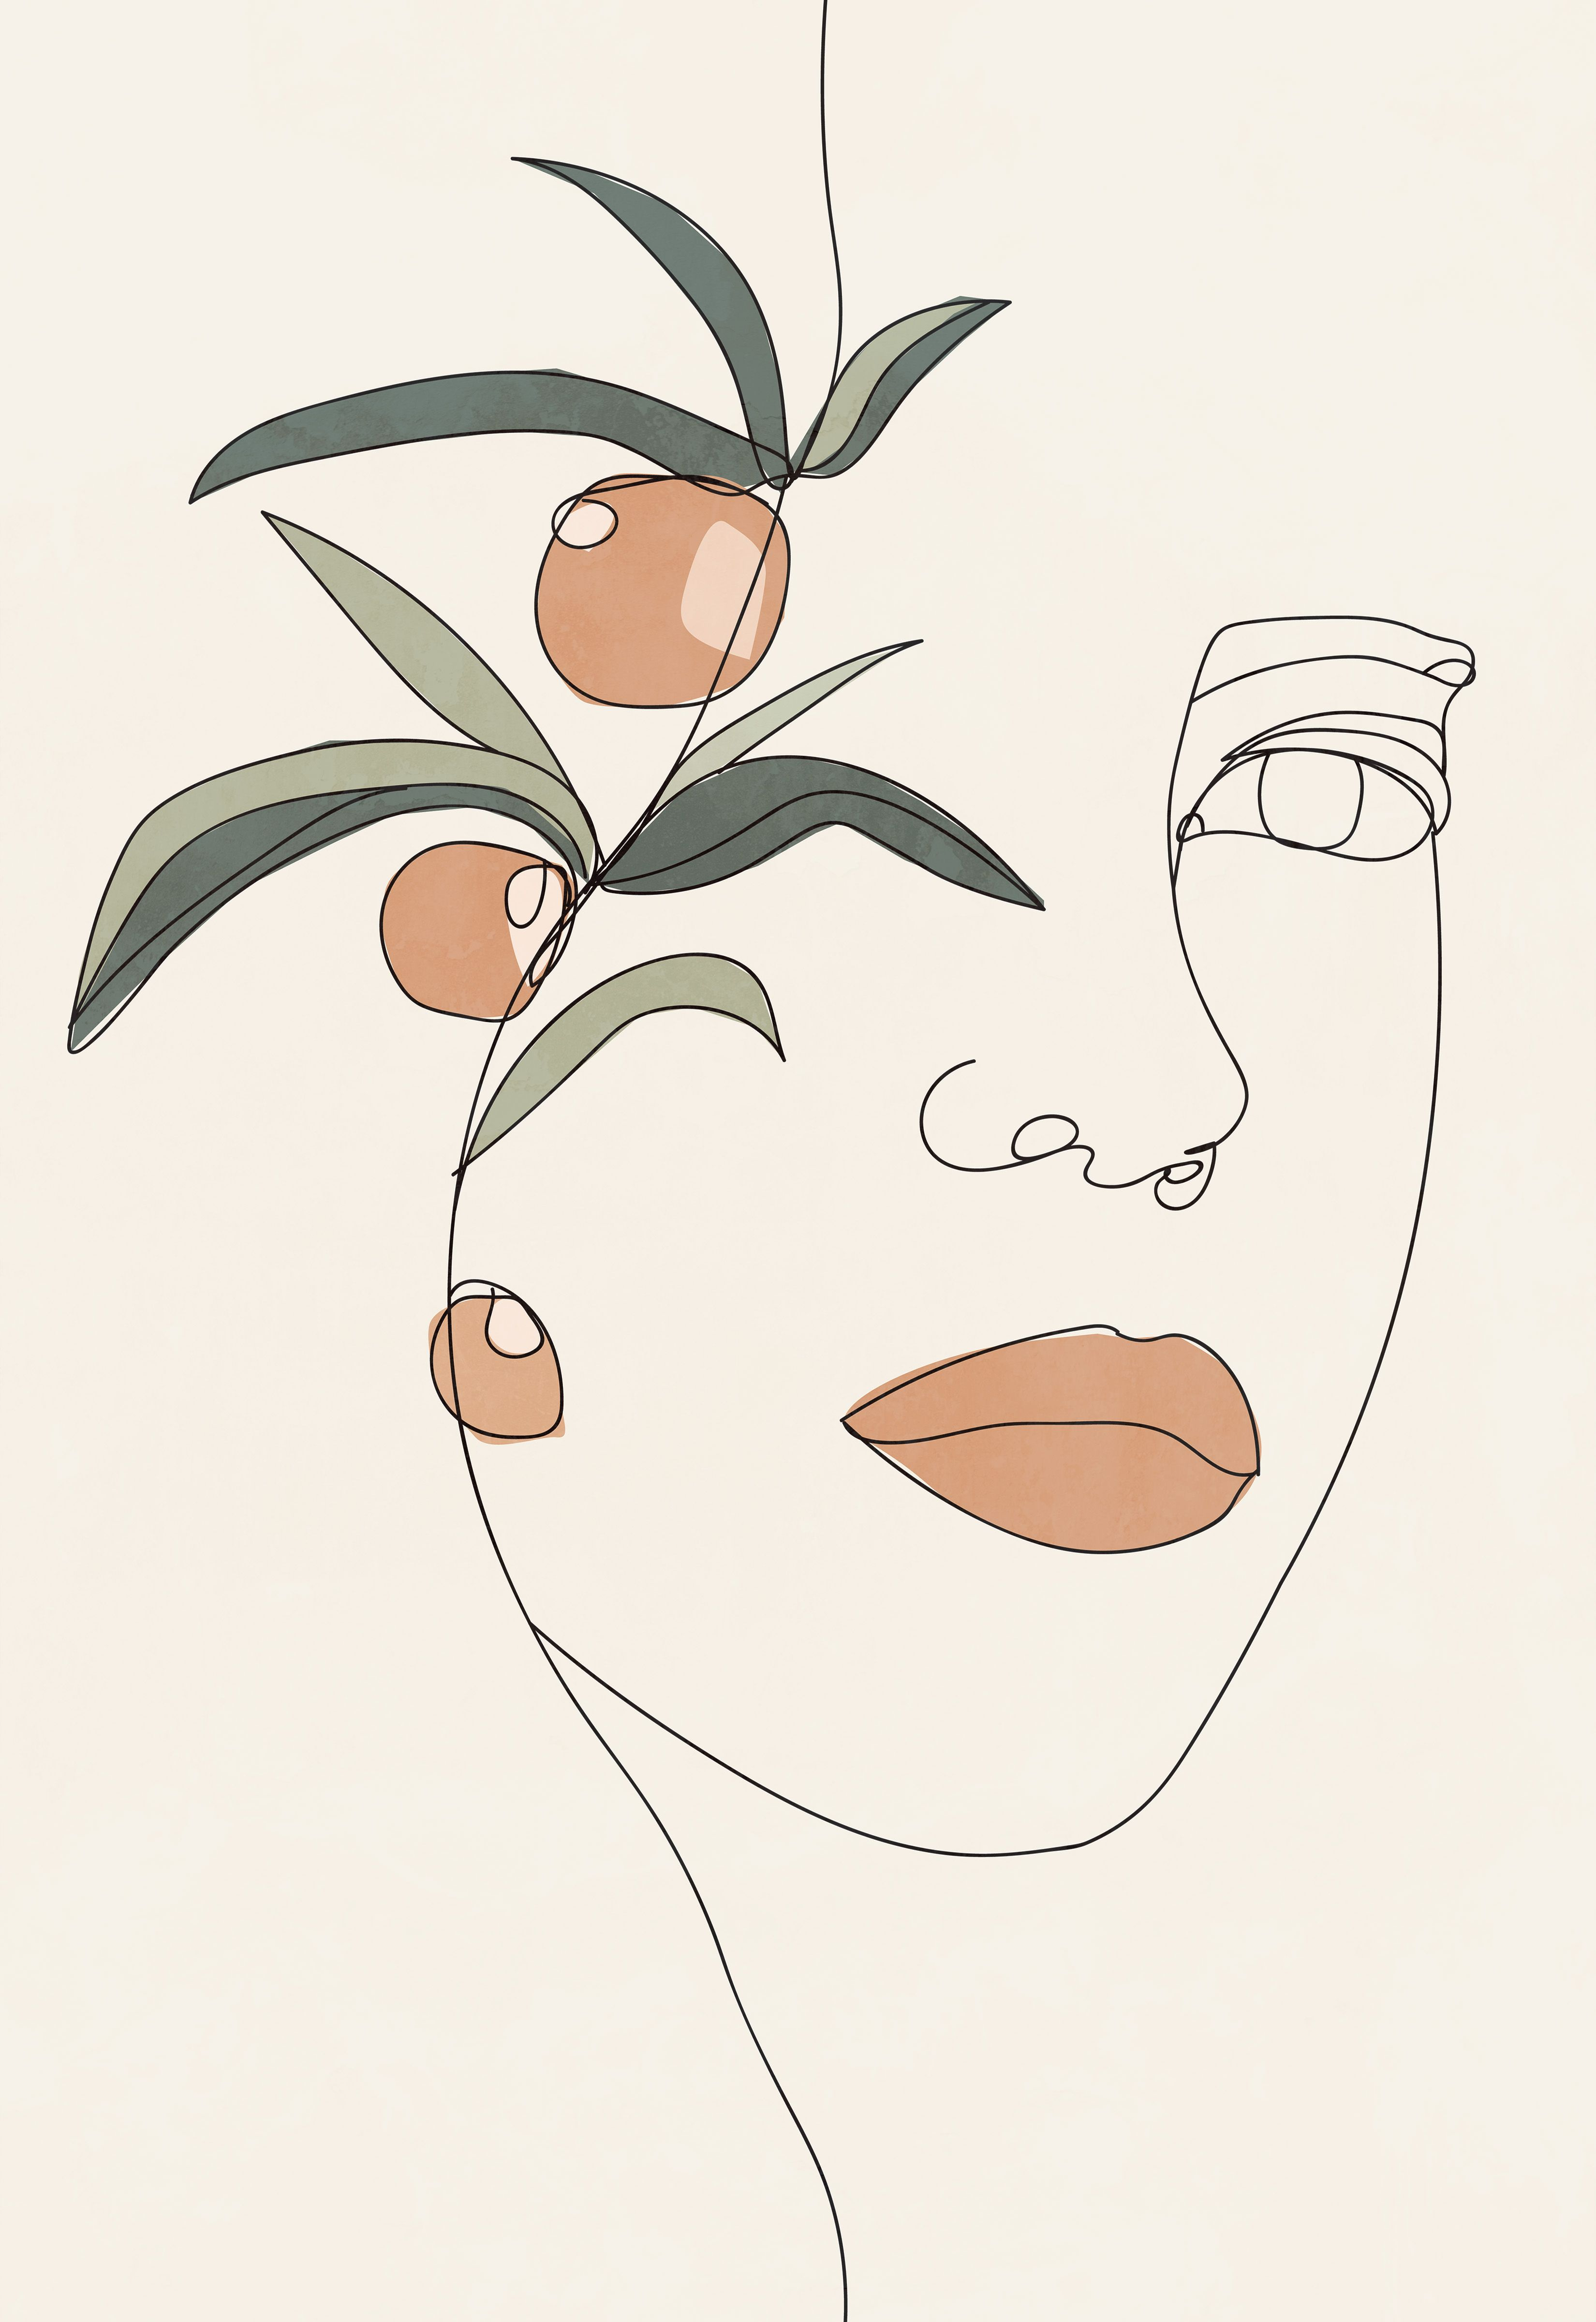 Modern Woman Line Drawing Printable Wall Art Plant Poster Etsy In 2020 Line Art Drawings Abstract Line Art Minimalist Art